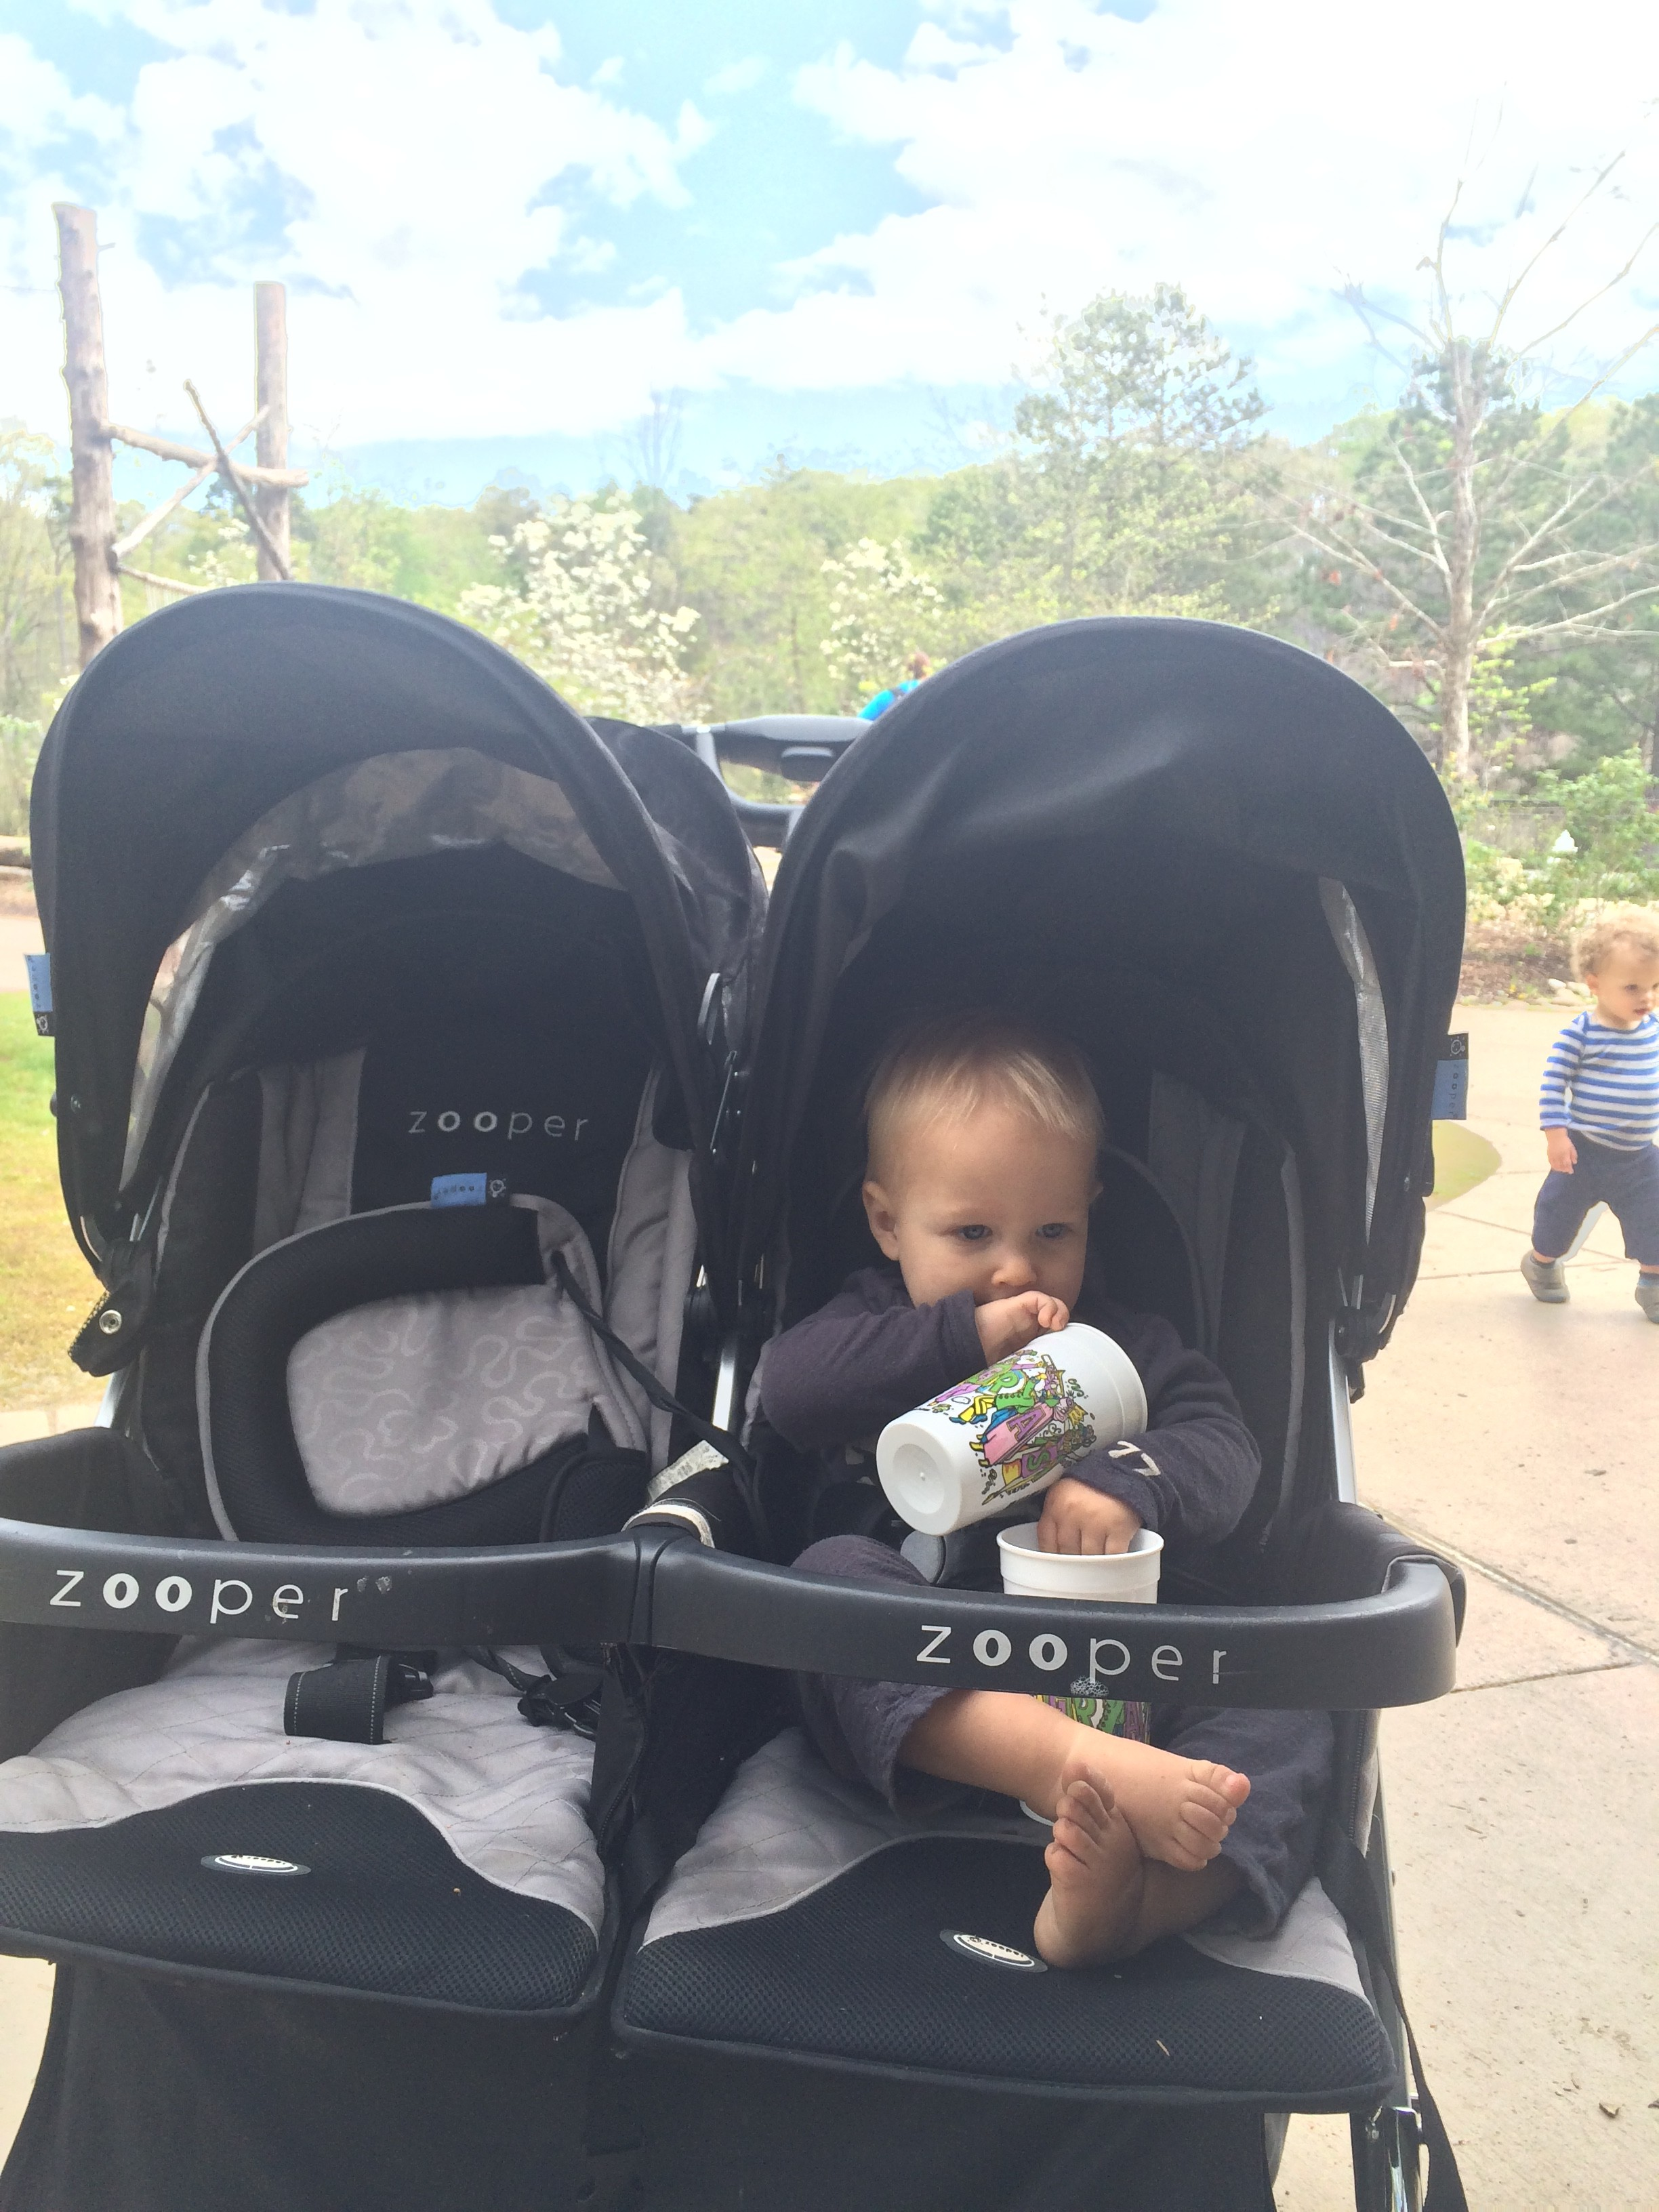 Abel was a trooper in the zooper